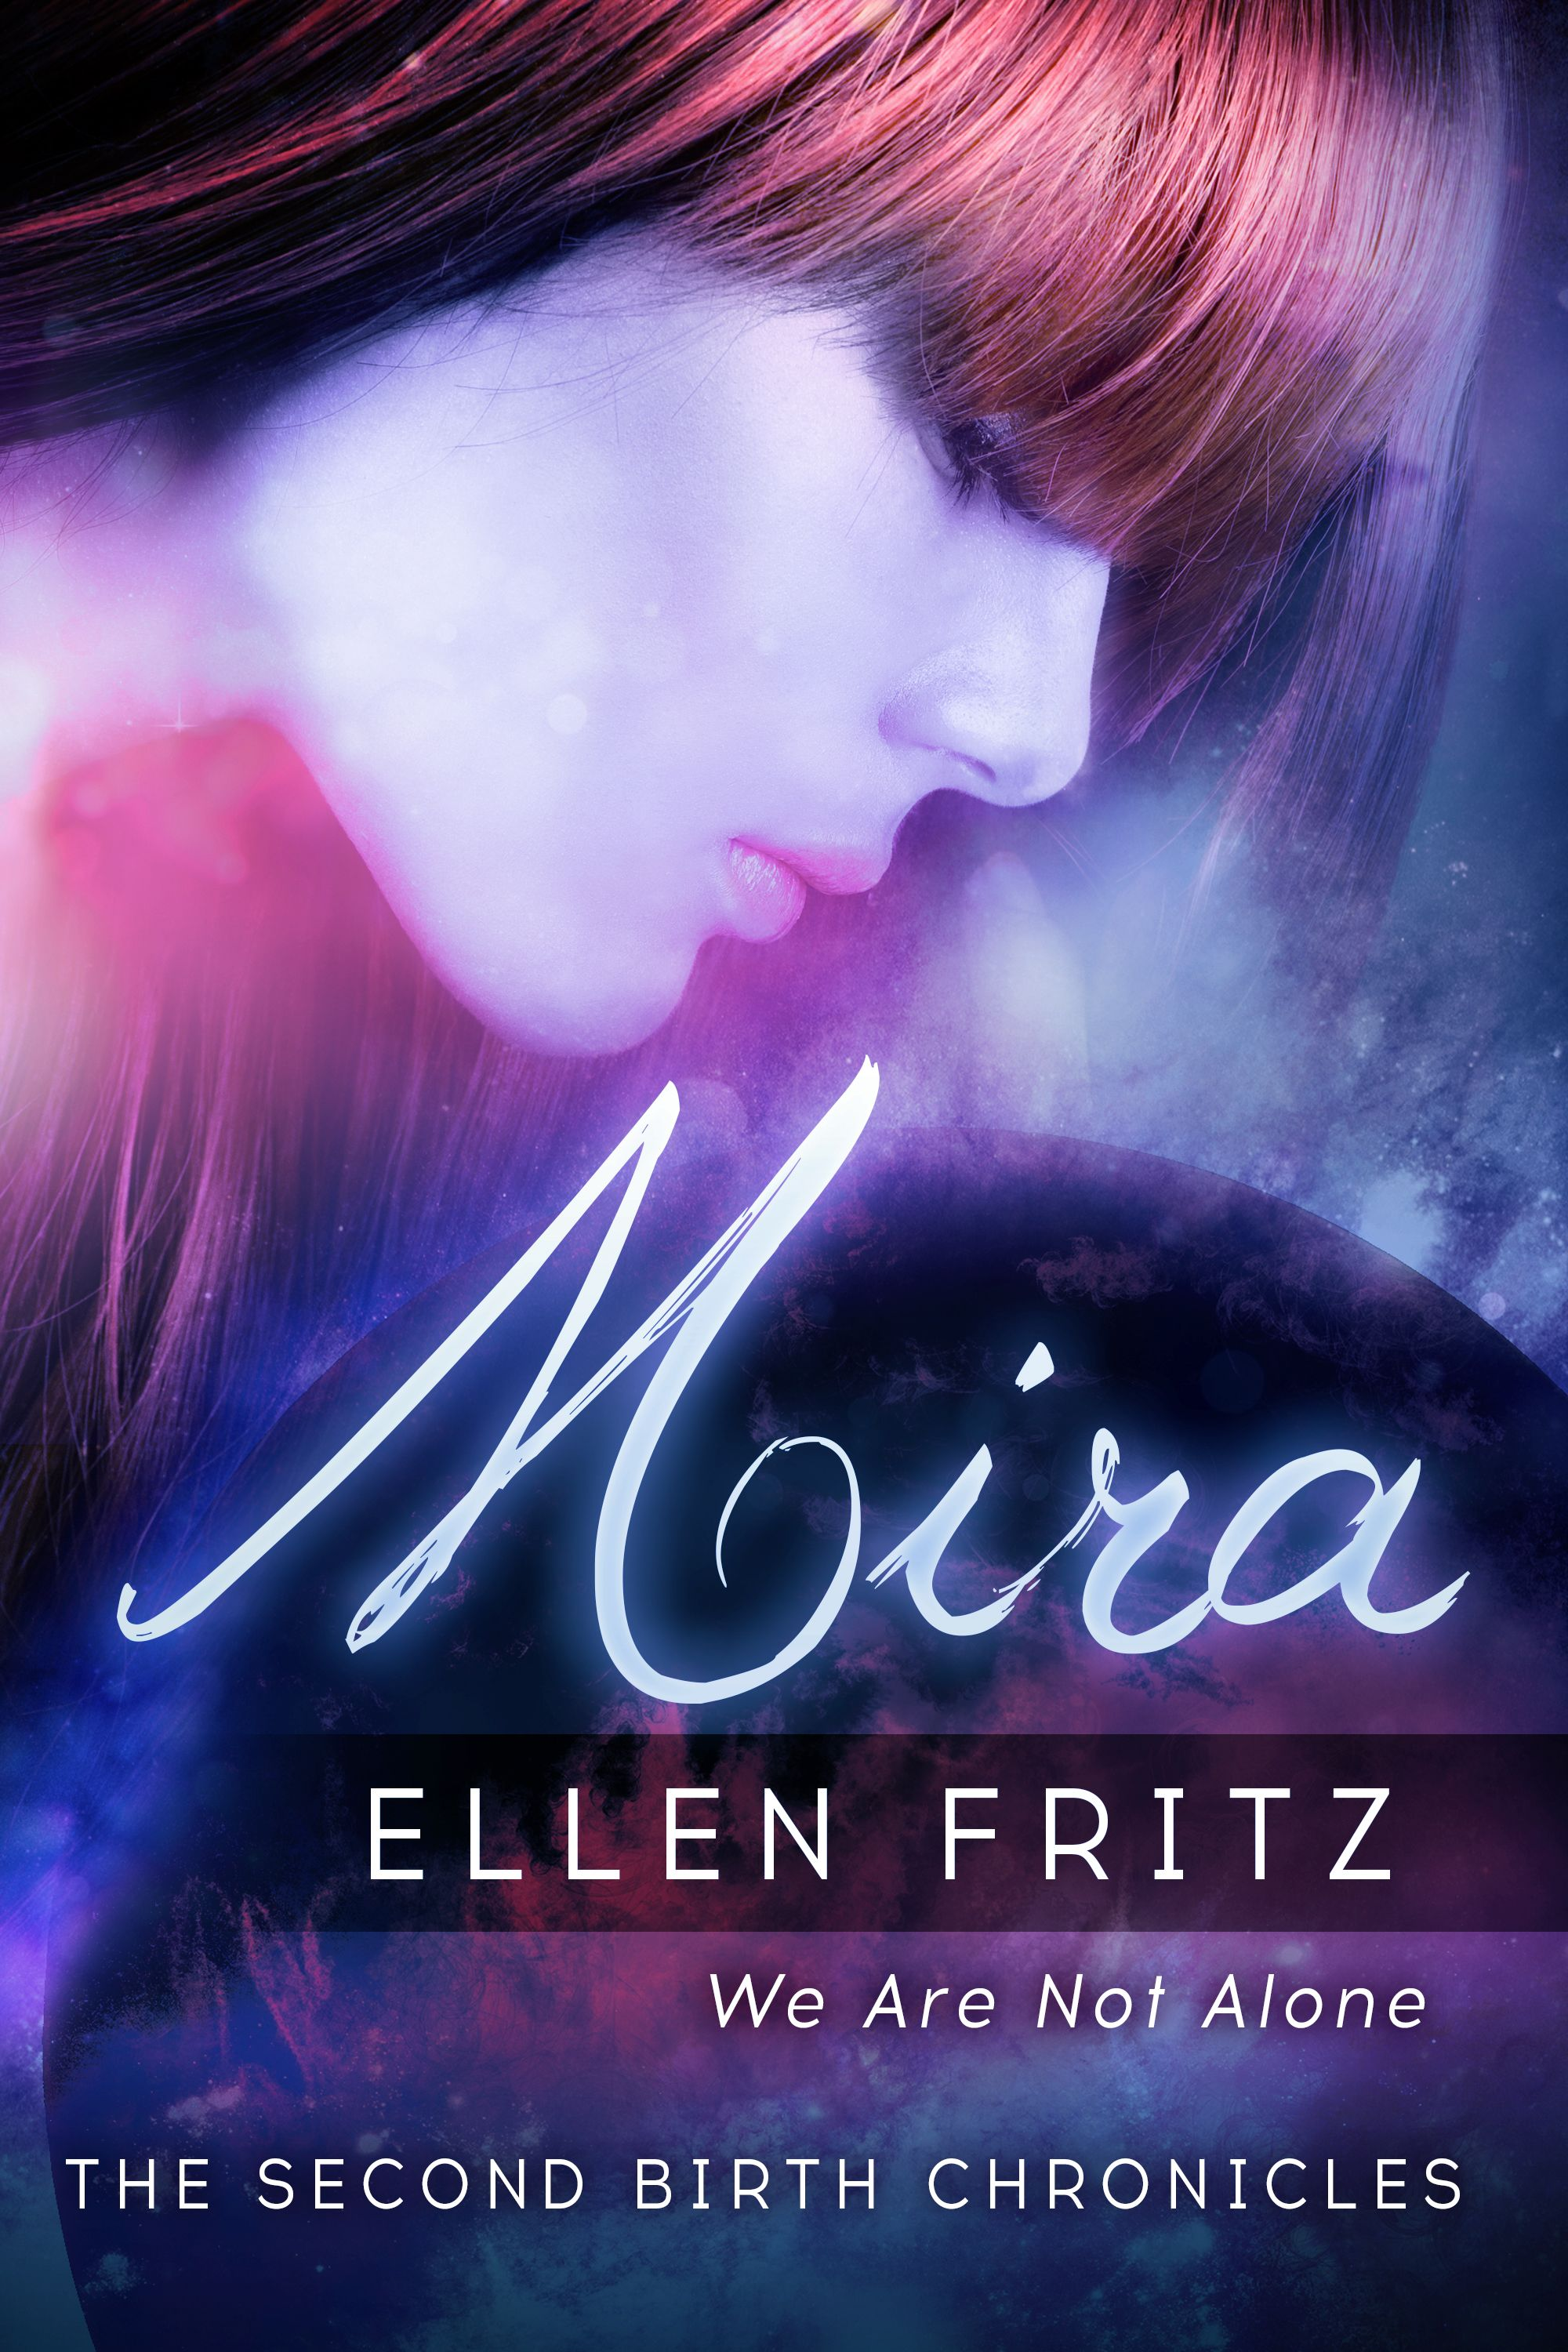 A young woman becoming an alien, learning to live with different